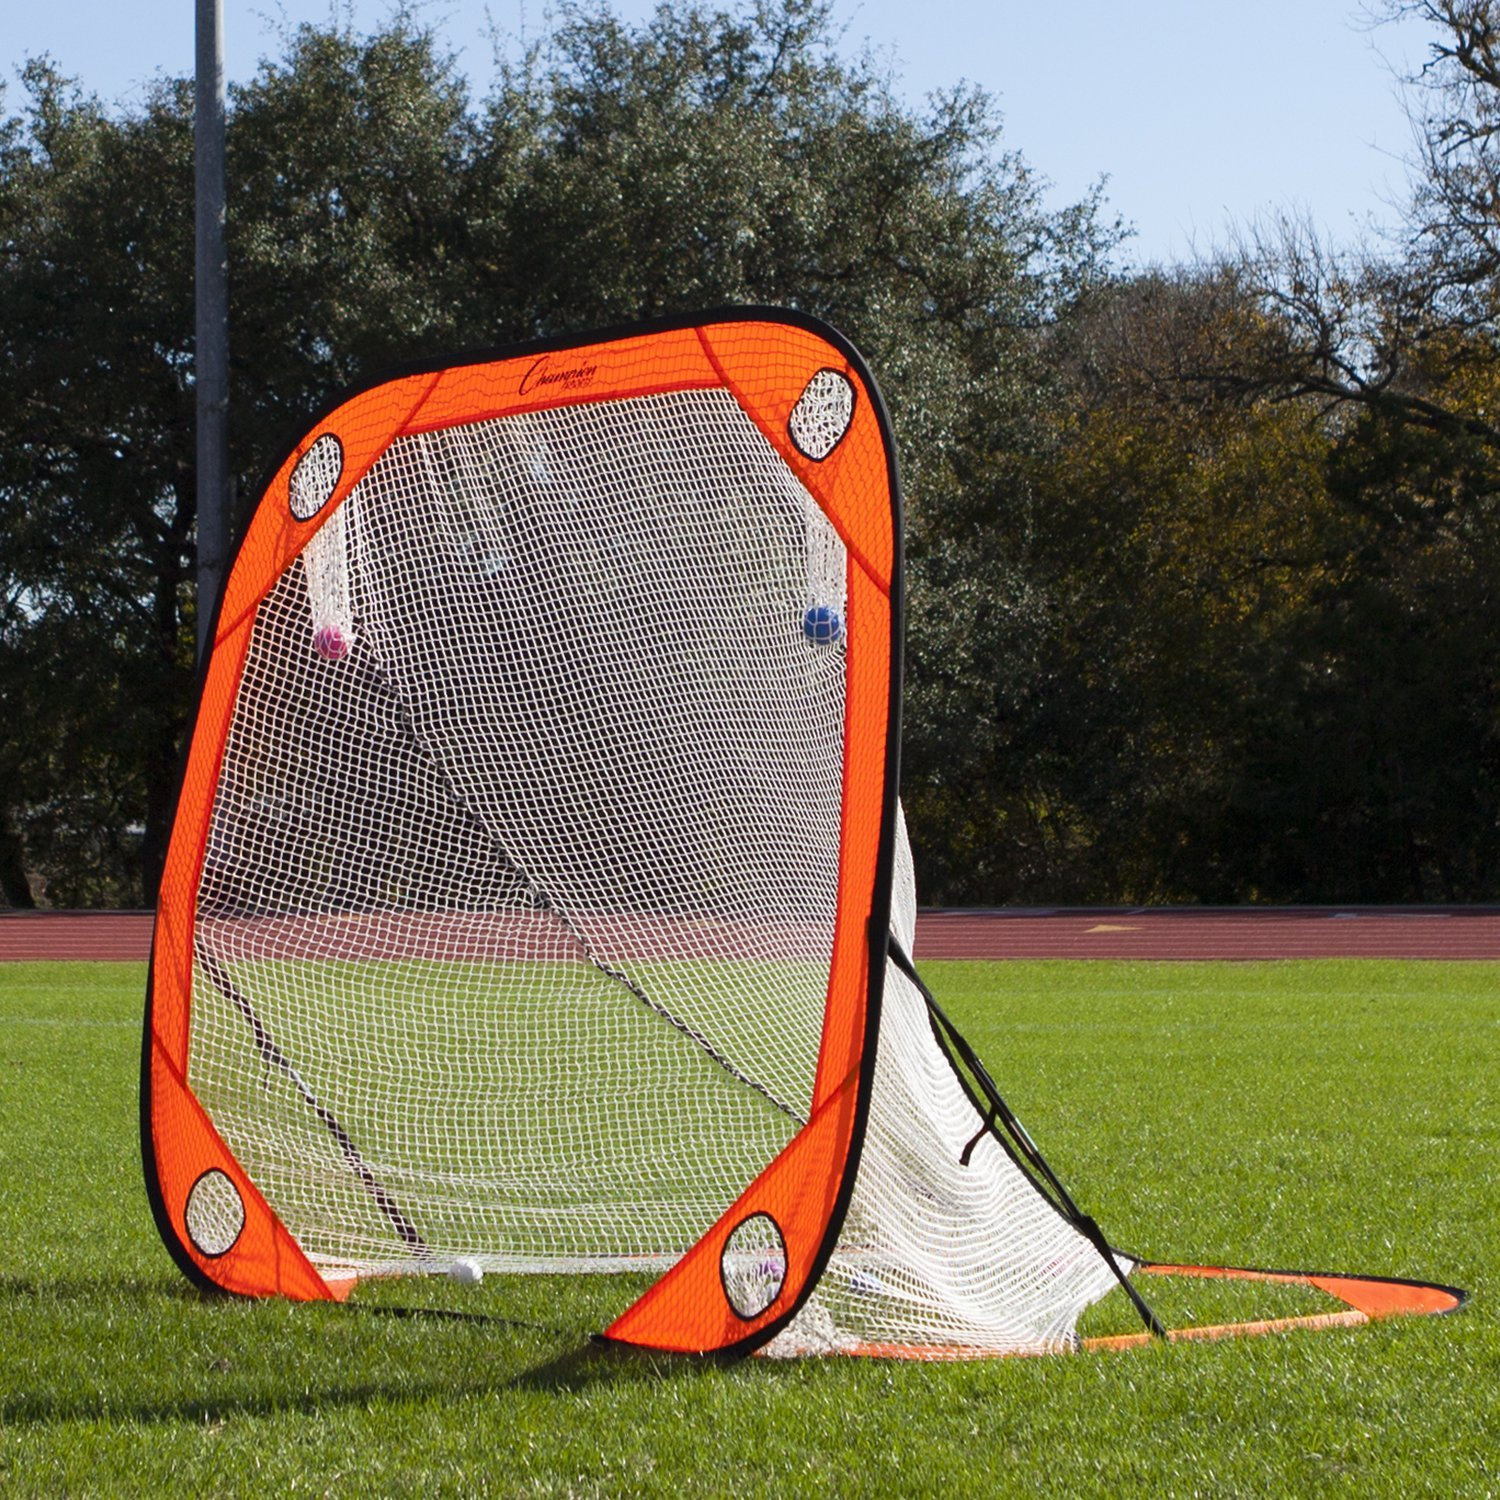 best lacrosse goal reviews of 2017 at topproducts com